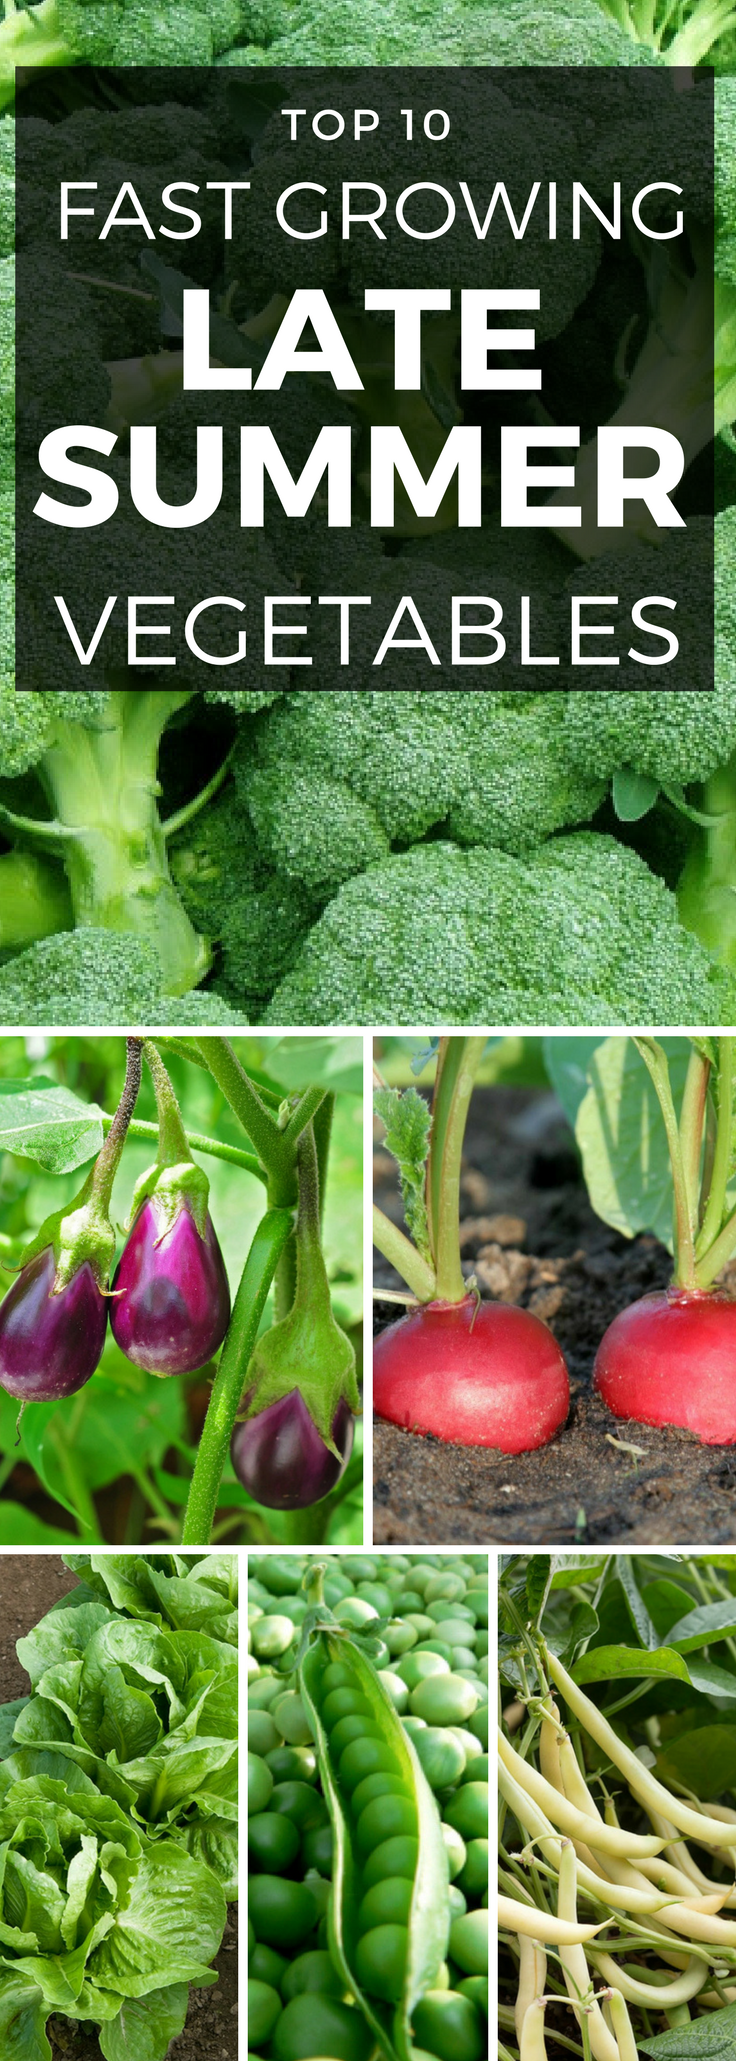 Top 10 Vegetables To Plant In Late Summer With Images 400 x 300